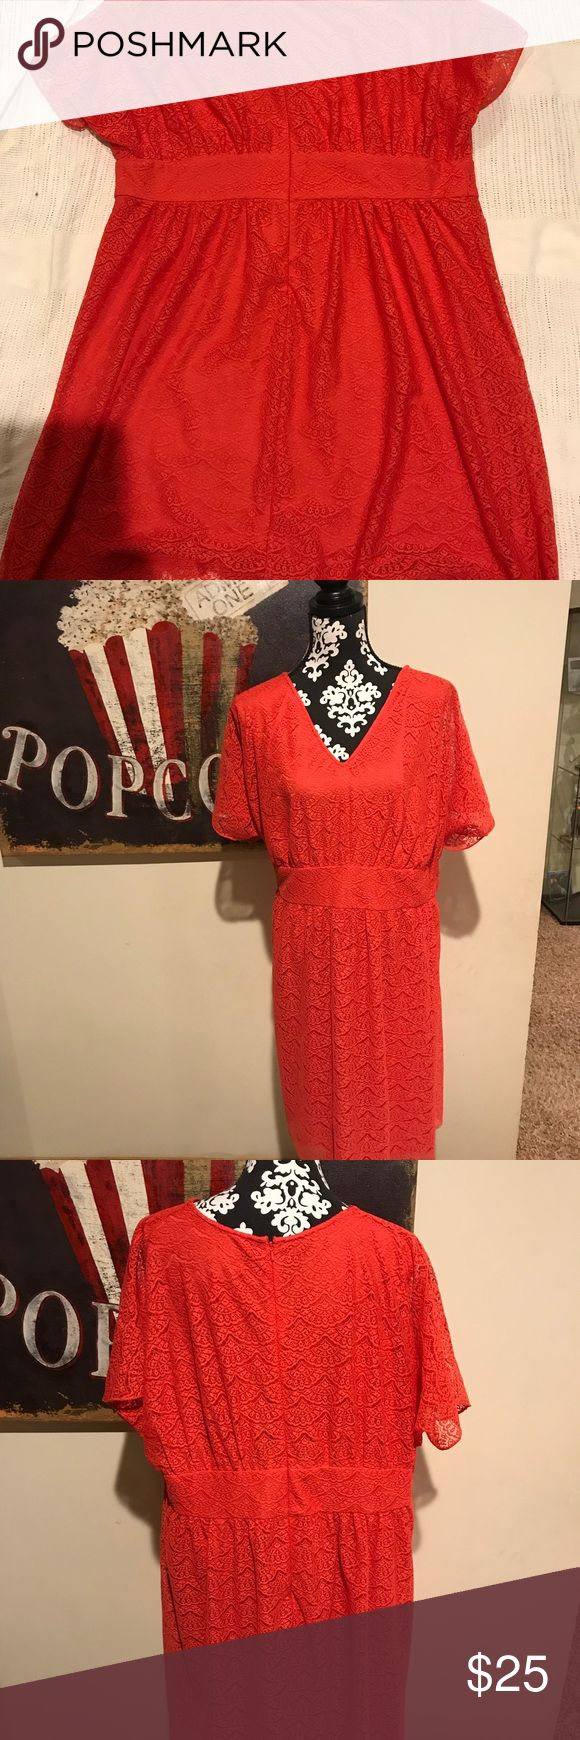 Adrianna Papell Woman Size 22w Dress Adrianna Papell Woman Size 22 dress Empire waist lace overlay 100% polyester  Beautiful orange- coral color Measurements:  Across waist band- 23in Back length 34 in top to bottom  Like new condition- smoke free home Adrianna Papell Dresses Midi